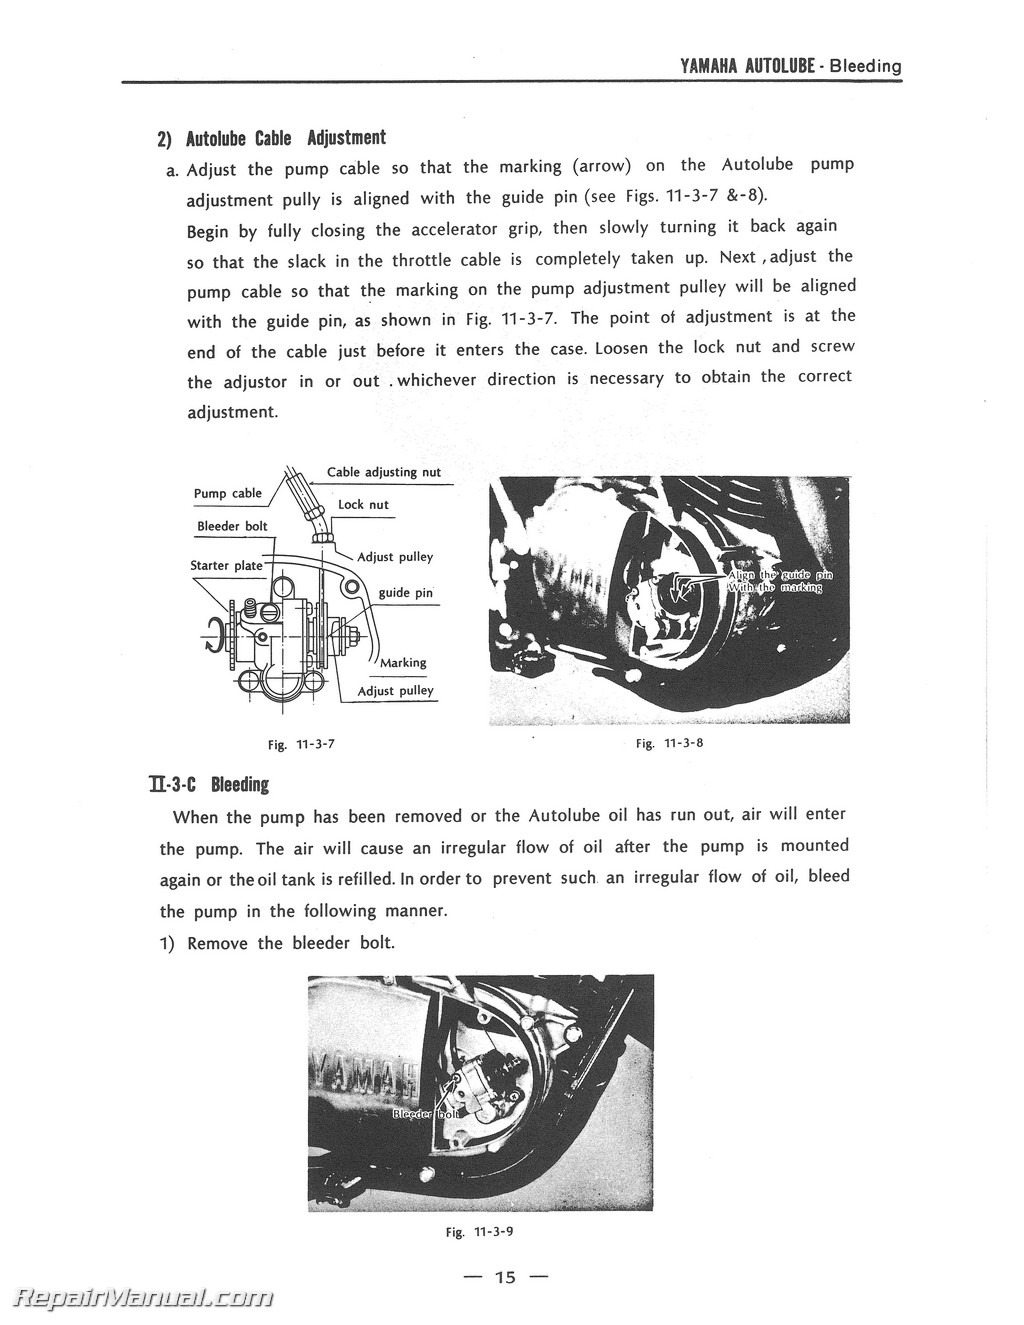 1970-1971-Yamaha-RT1-360cc-DT2-RT2-Service-Manual_Page_2 Yamaha Dt Motorcycle Wiring Diagrams on yamaha wiring harness diagram, yamaha motorcycle ignition system, yamaha 650 wiring diagram, yamaha moto 4 wiring diagram, yamaha grizzly 600 wiring diagram, yamaha wiring schematics, yamaha motorcycle paint codes, yamaha banshee wiring-diagram, yamaha schematic diagram, yamaha motorcycle wheels and tires, yamaha dt 100 wiring diagram, yamaha generator wiring diagram, yamaha xs1100 wiring-diagram, yamaha virago wiring-diagram, yamaha rt100 schematic, yamaha seca xj650 wiring-diagram, yamaha dt 175 wiring-diagram, yamaha xs650 wiring-diagram, yamaha rd 350 wiring diagram, yamaha motorcycle drawings,